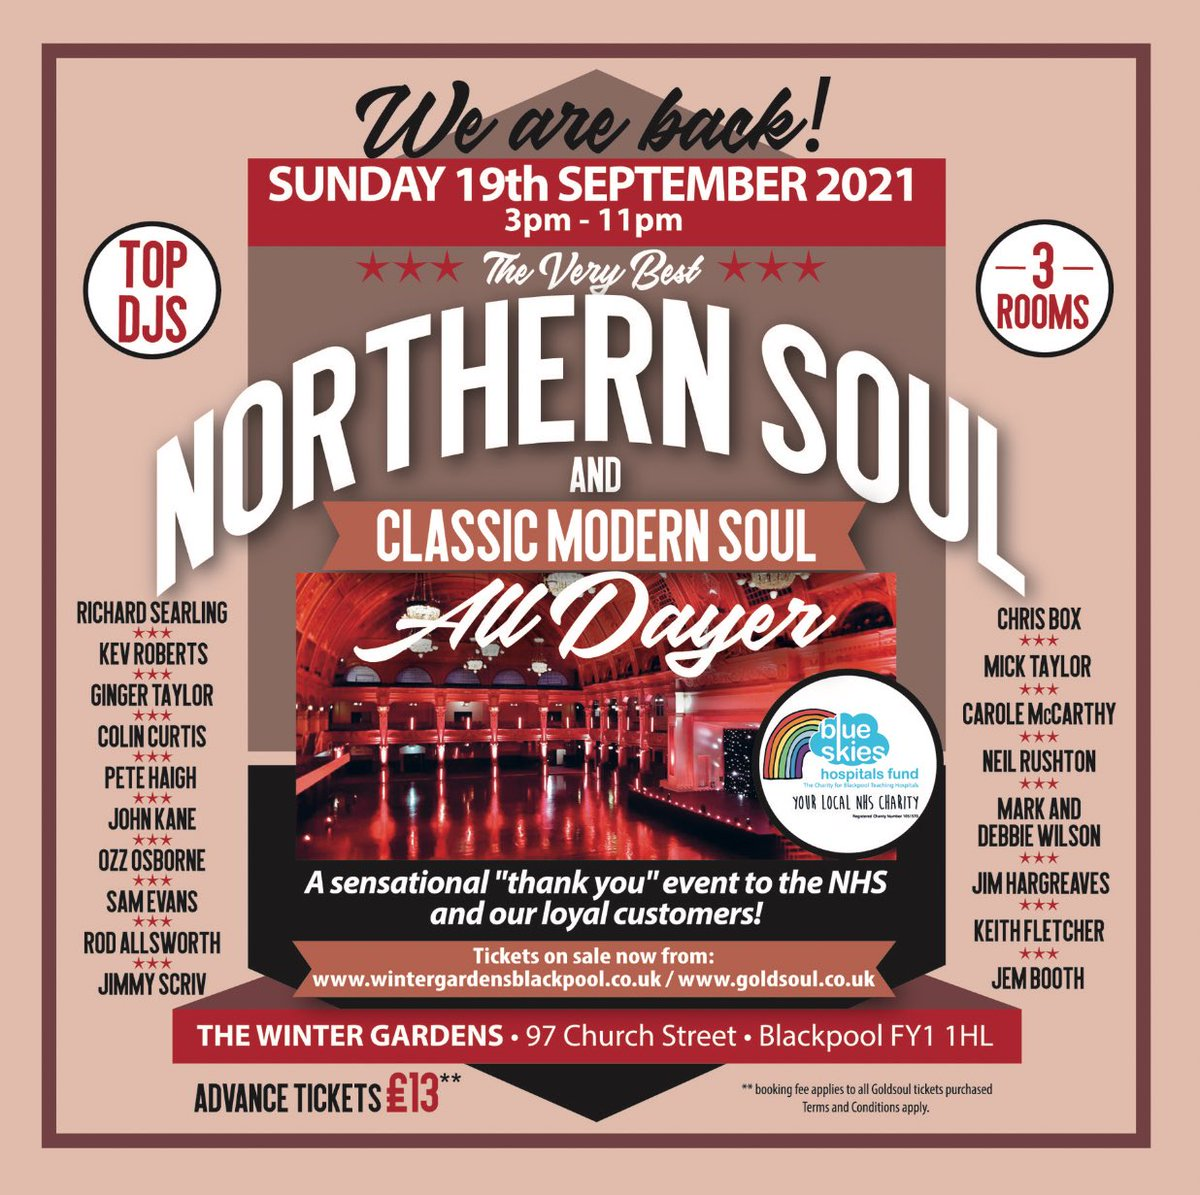 This Sunday @WGBpl it's the return of Northern Soul, Motown & Modern Soul in 3 fantastic rooms all under one amazing roof! Advance tickets on sale now for this massive reunion event. £13 (no booking fee) wintergardensblackpool.co.uk/whats-on/the-v…